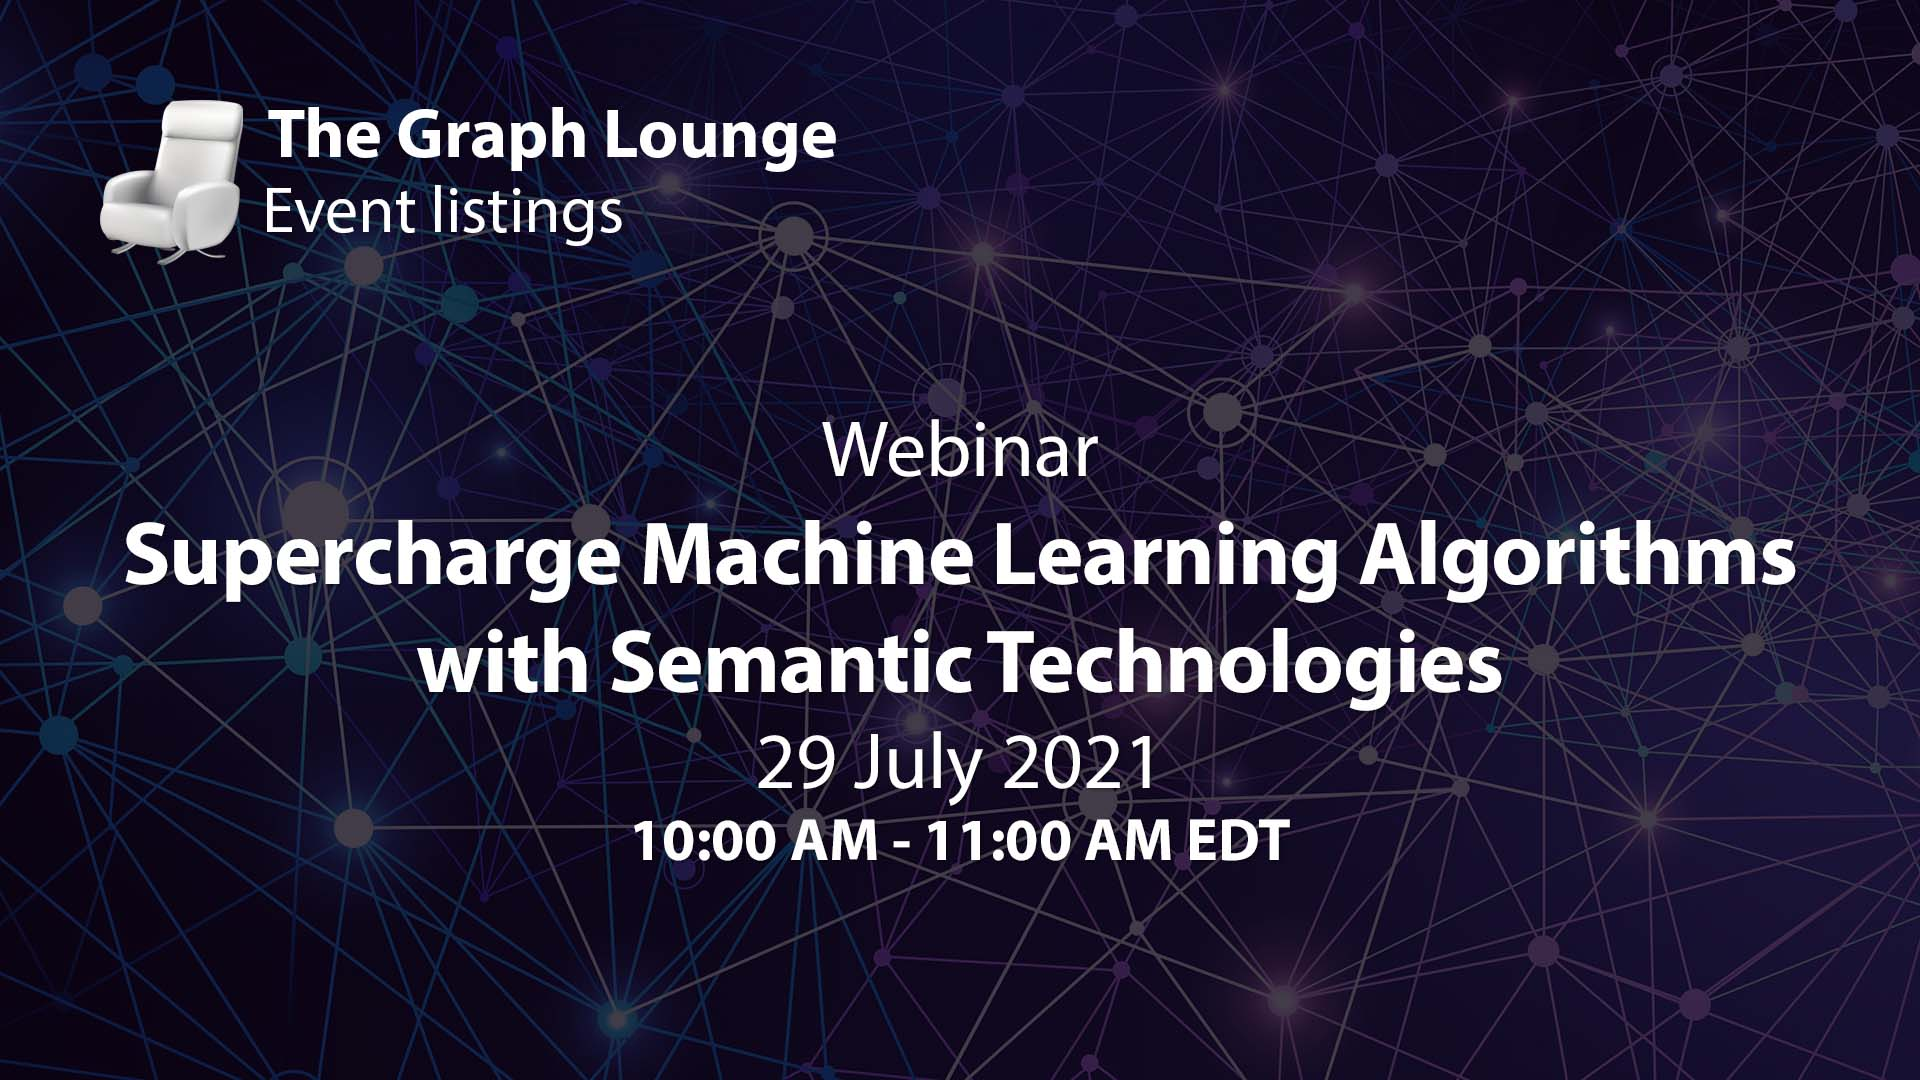 Supercharge Machine Learning Algorithms with Semantic Technologies